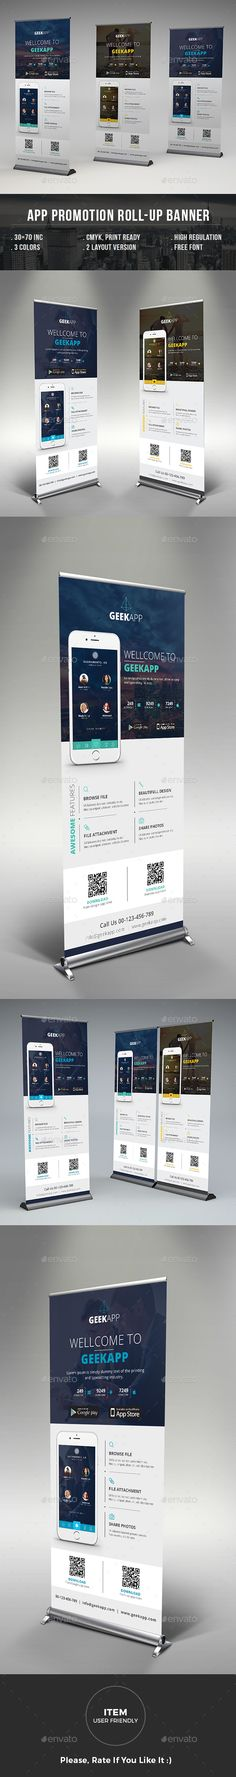 Mobile App Promotion Roll-up Banner Template PSD. Download here: http://graphicriver.net/item/mobile-app-promotion-rollup-banner/14986121?ref=ksioks